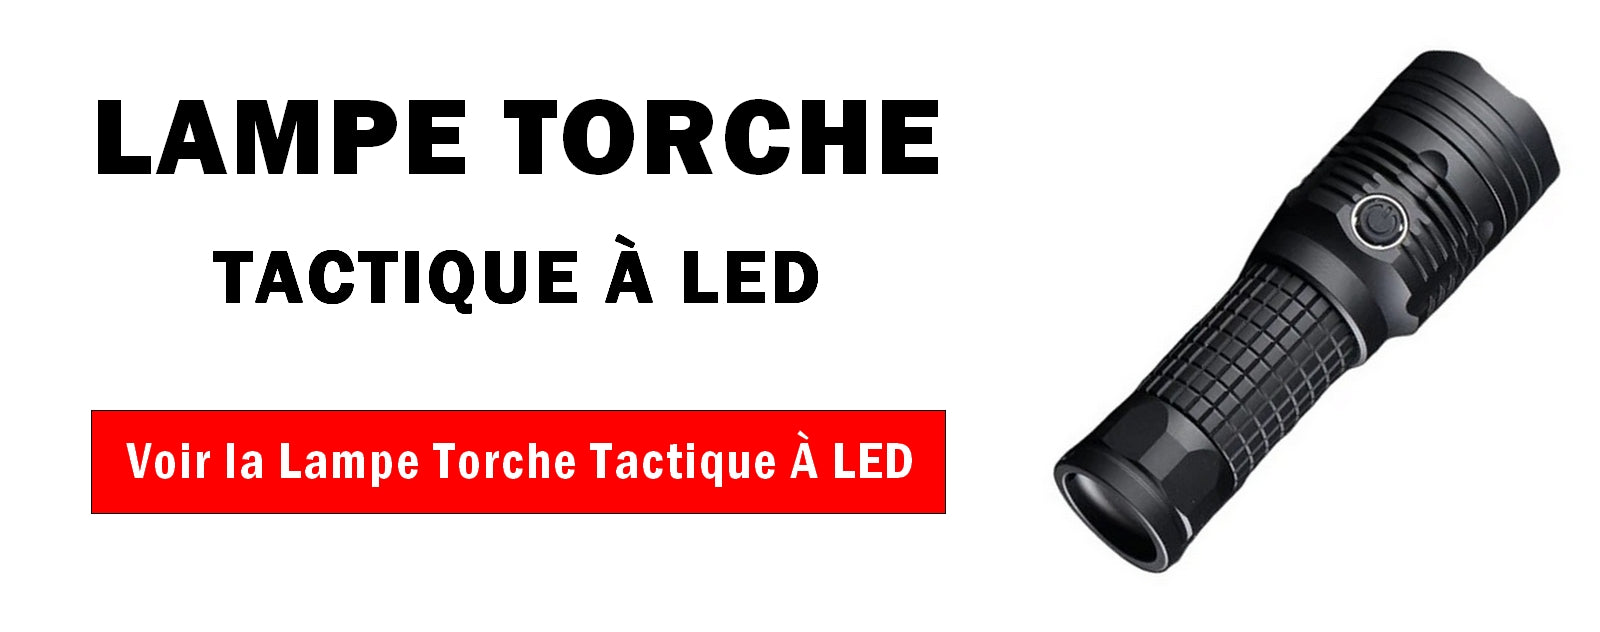 Lampe Torche Tactique à Led